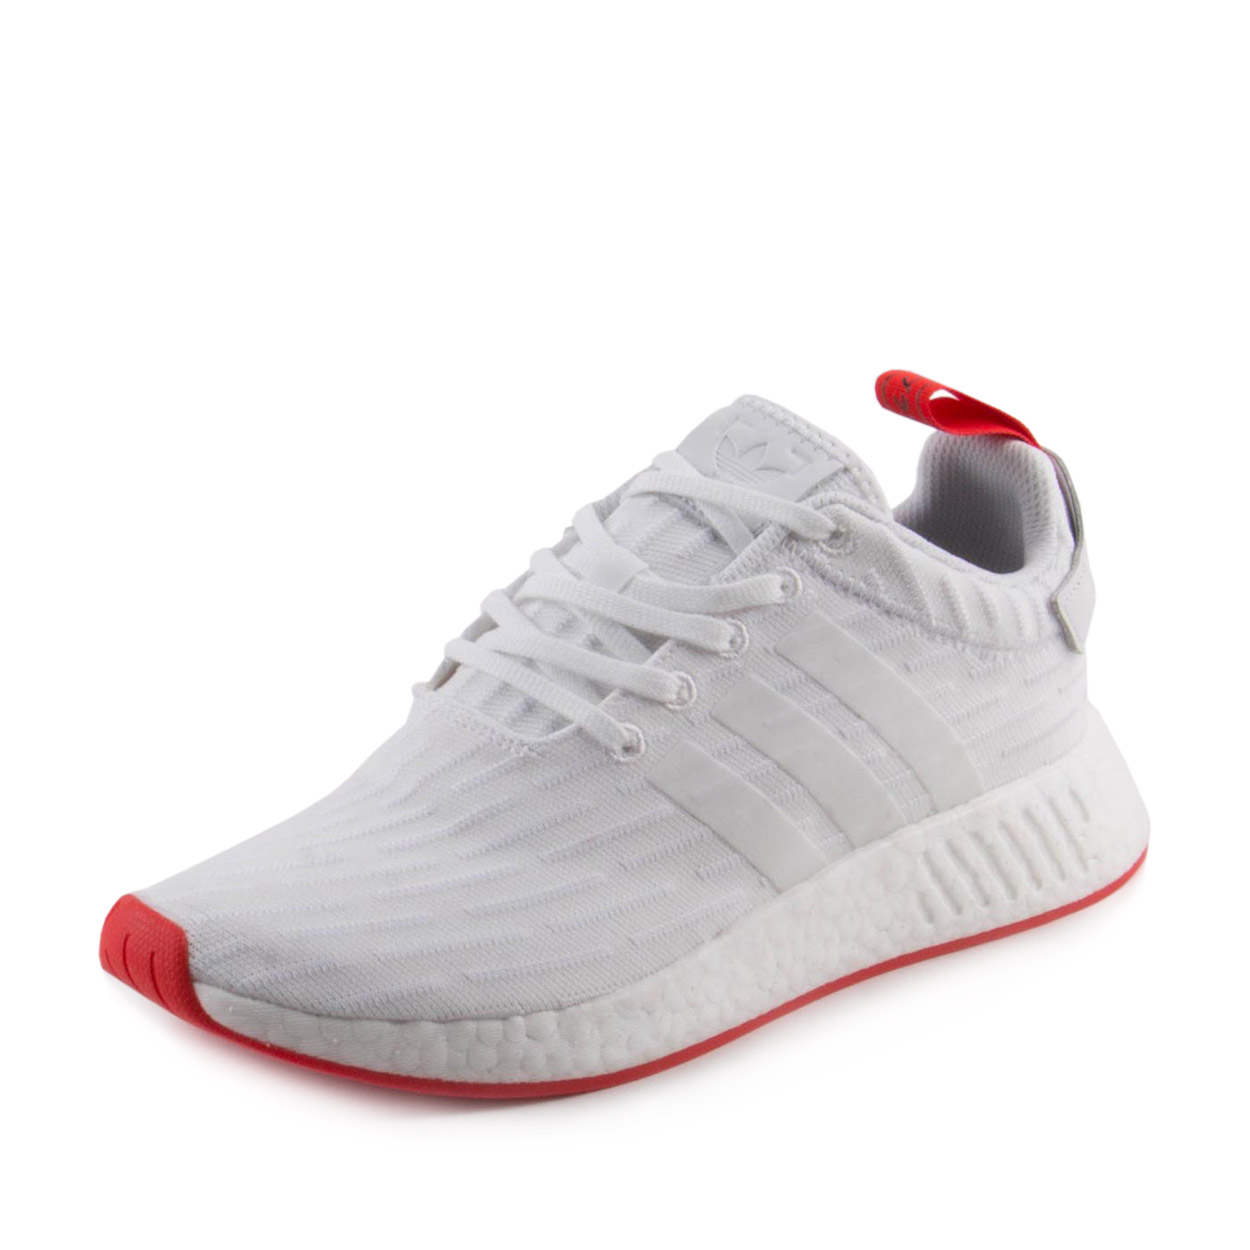 Adidas NMD_R2 Primeknit Men's Shoe White/Core Red ba7253 (8 D(M) US)